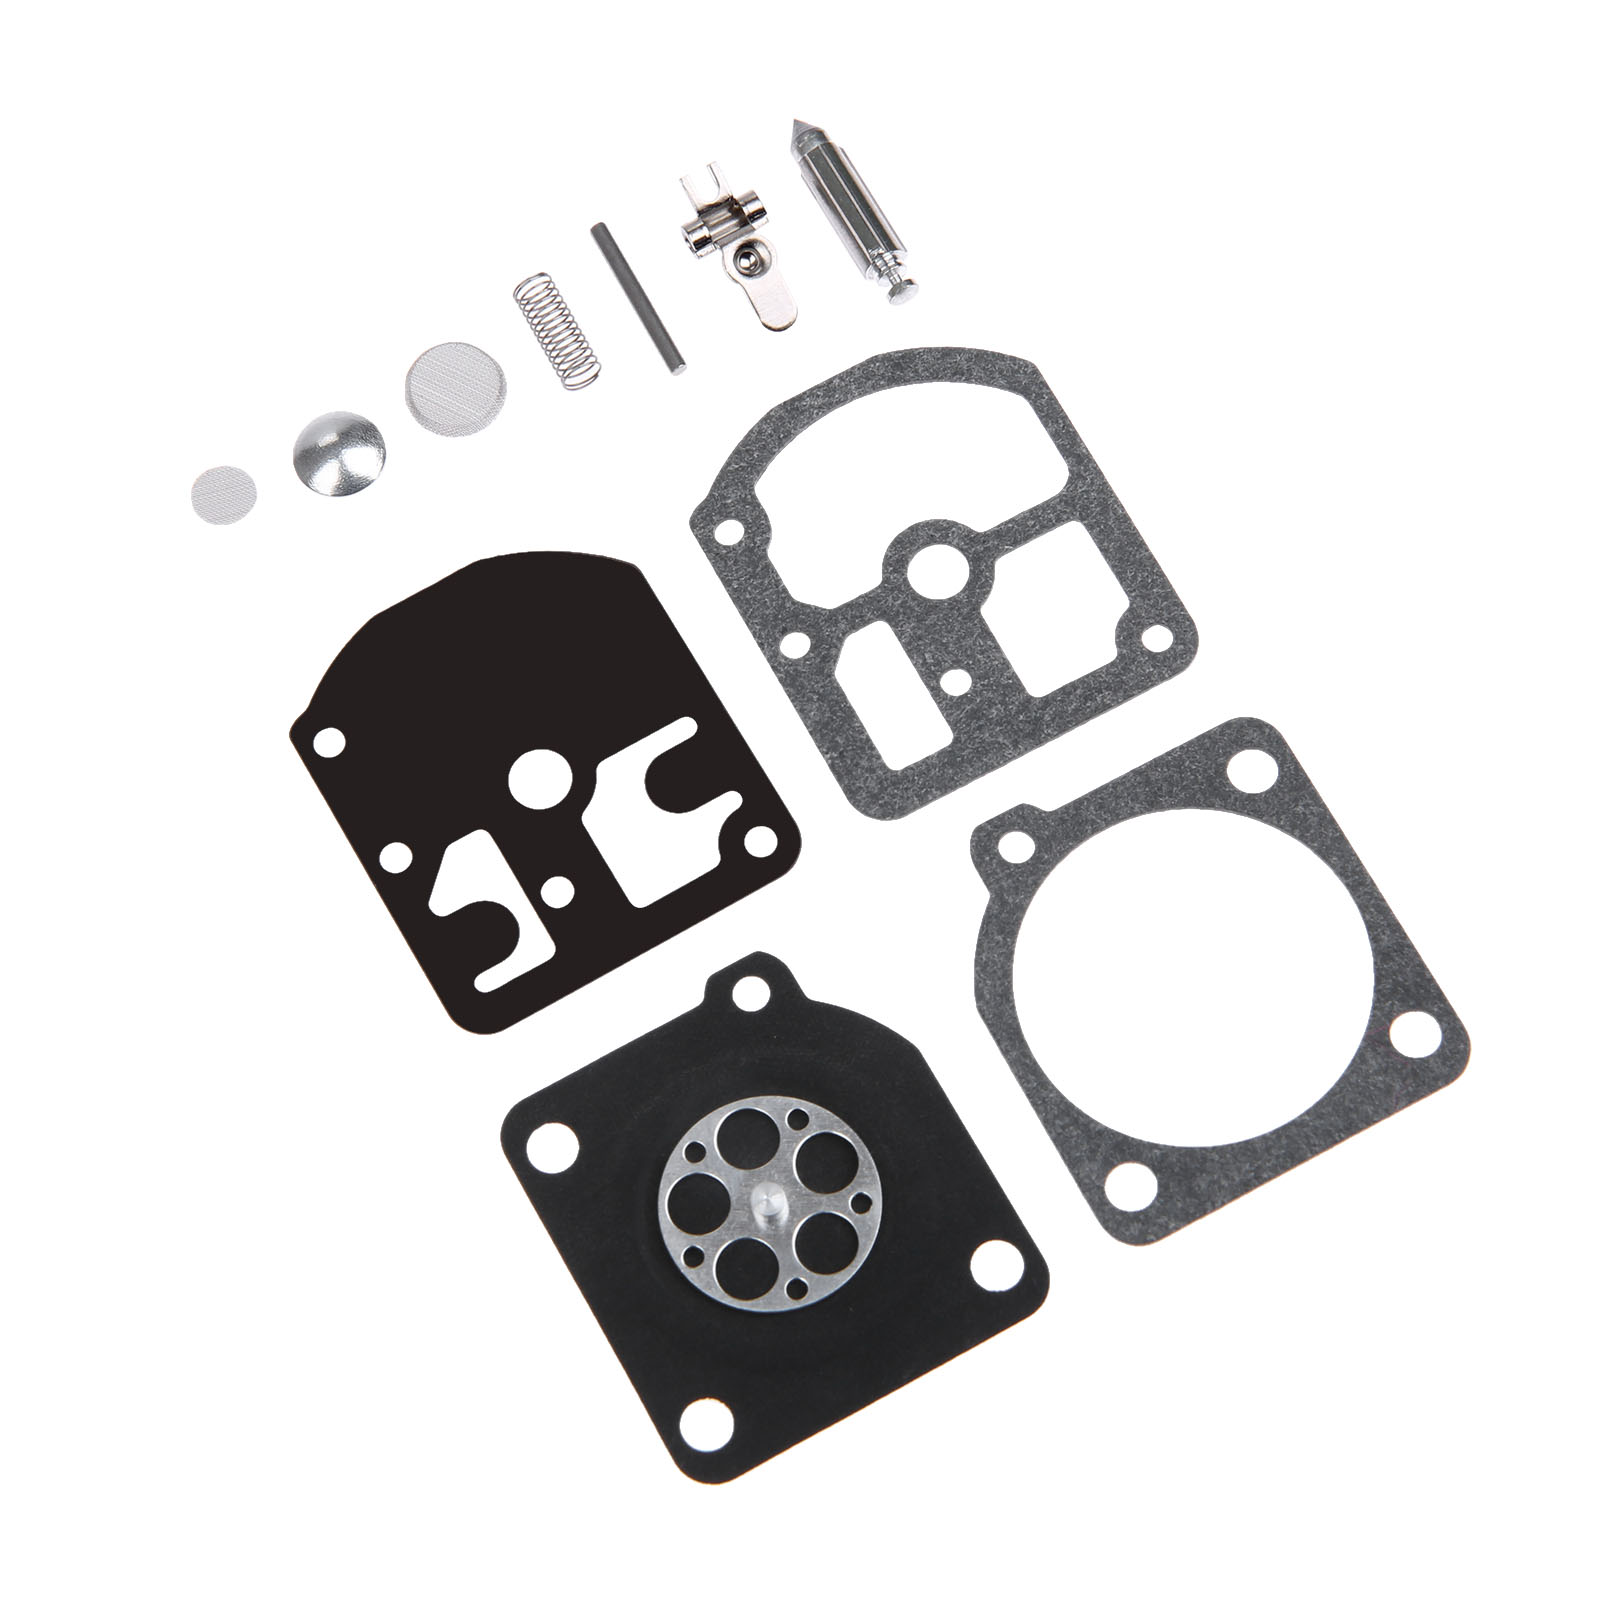 US $2 69 20% OFF|DRELD RB 11 Carburetor Carb Rebuild Tool Repair Gasket Kit  for Stihl 009 010 011 012 011AV C1S S1A C1S S1B Chainsaw Parts AE0815-in